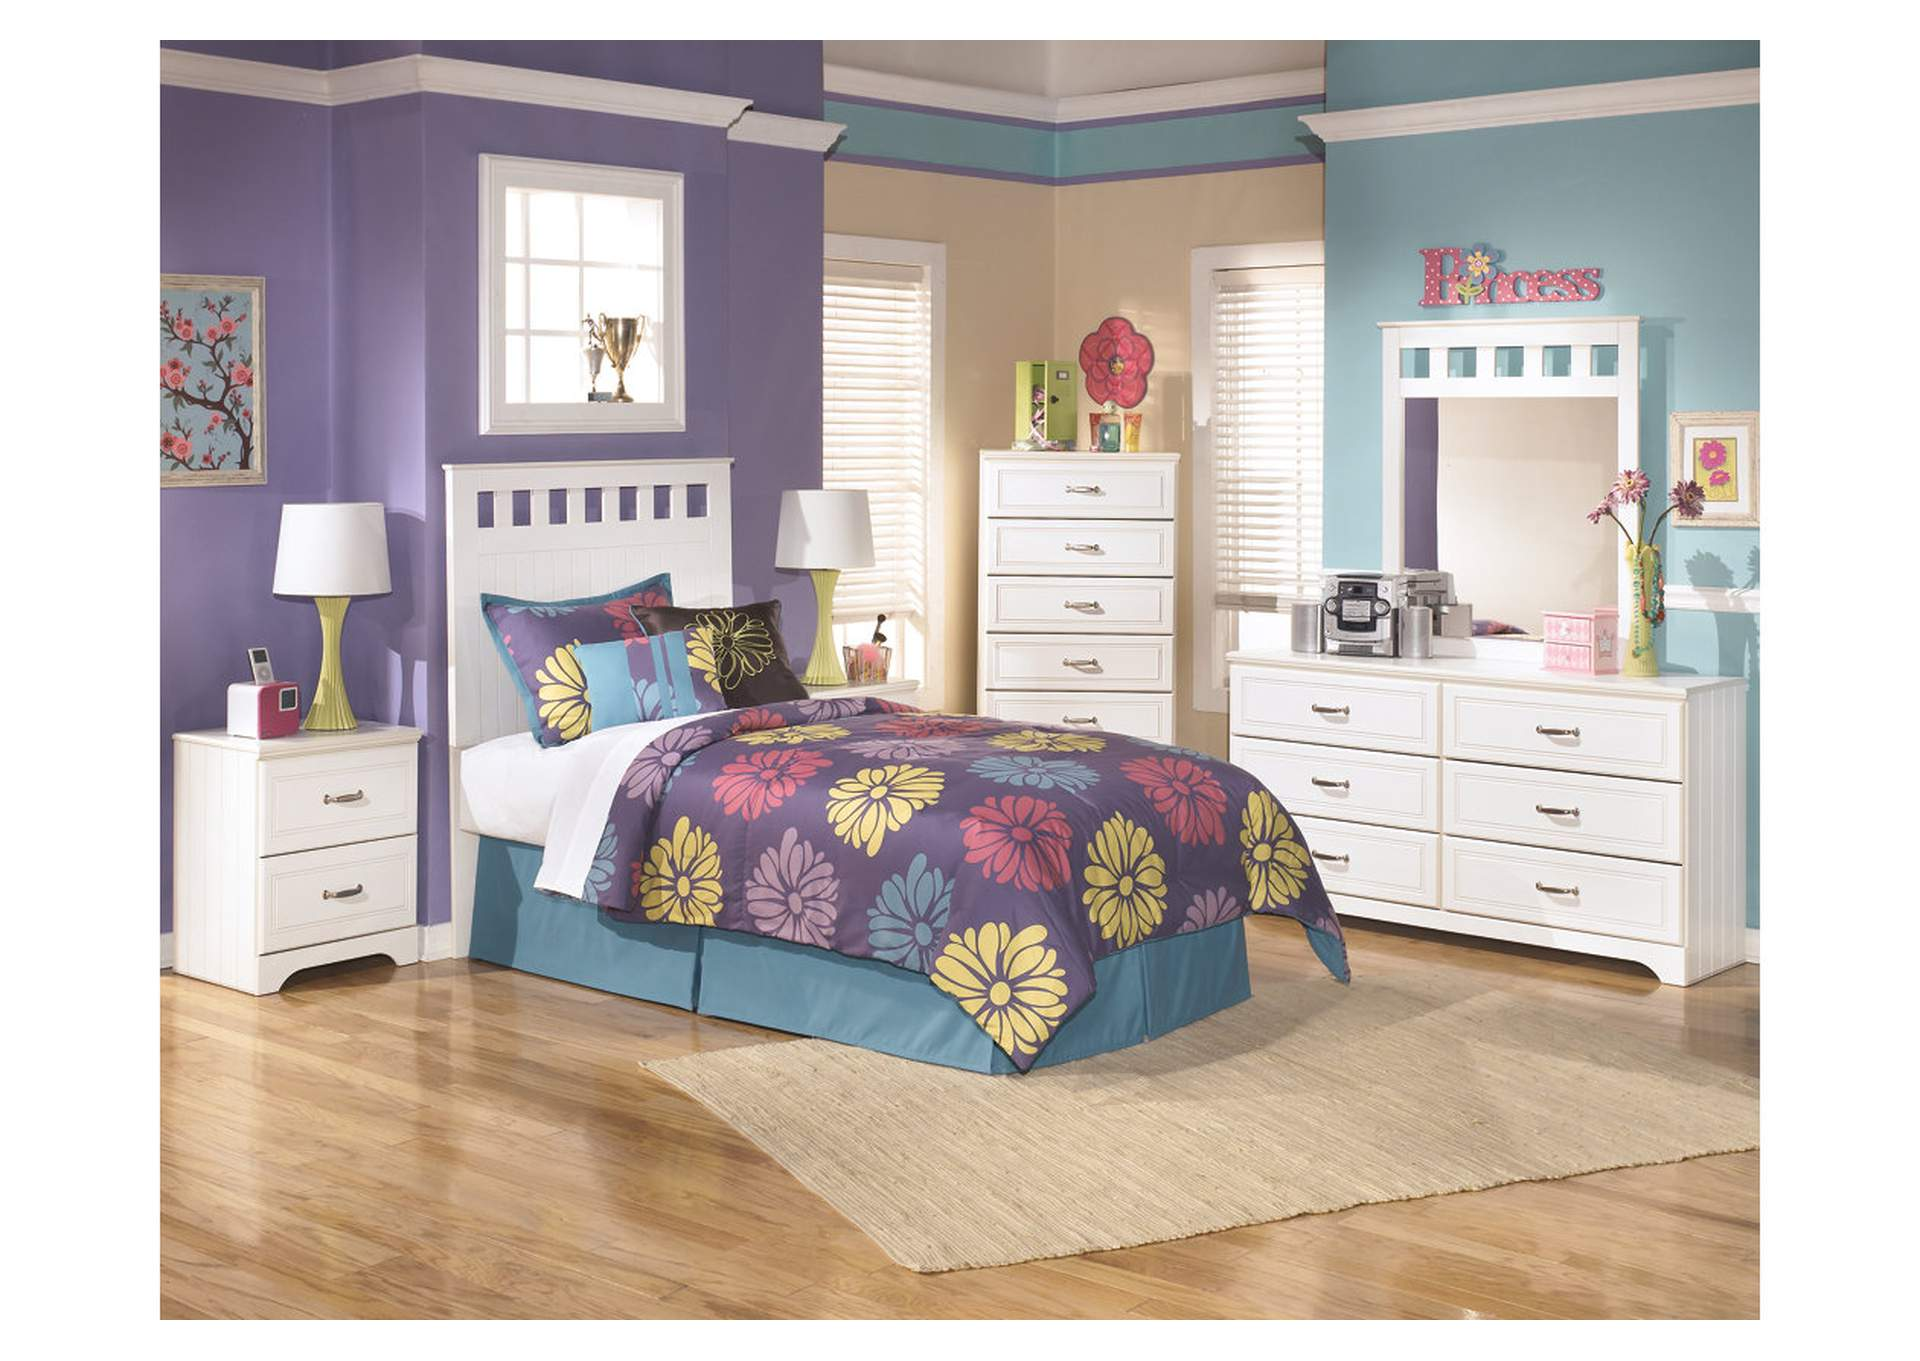 Lulu Twin Panel Headboard, Dresser, Mirror, Chest & Night Stand,Signature Design by Ashley